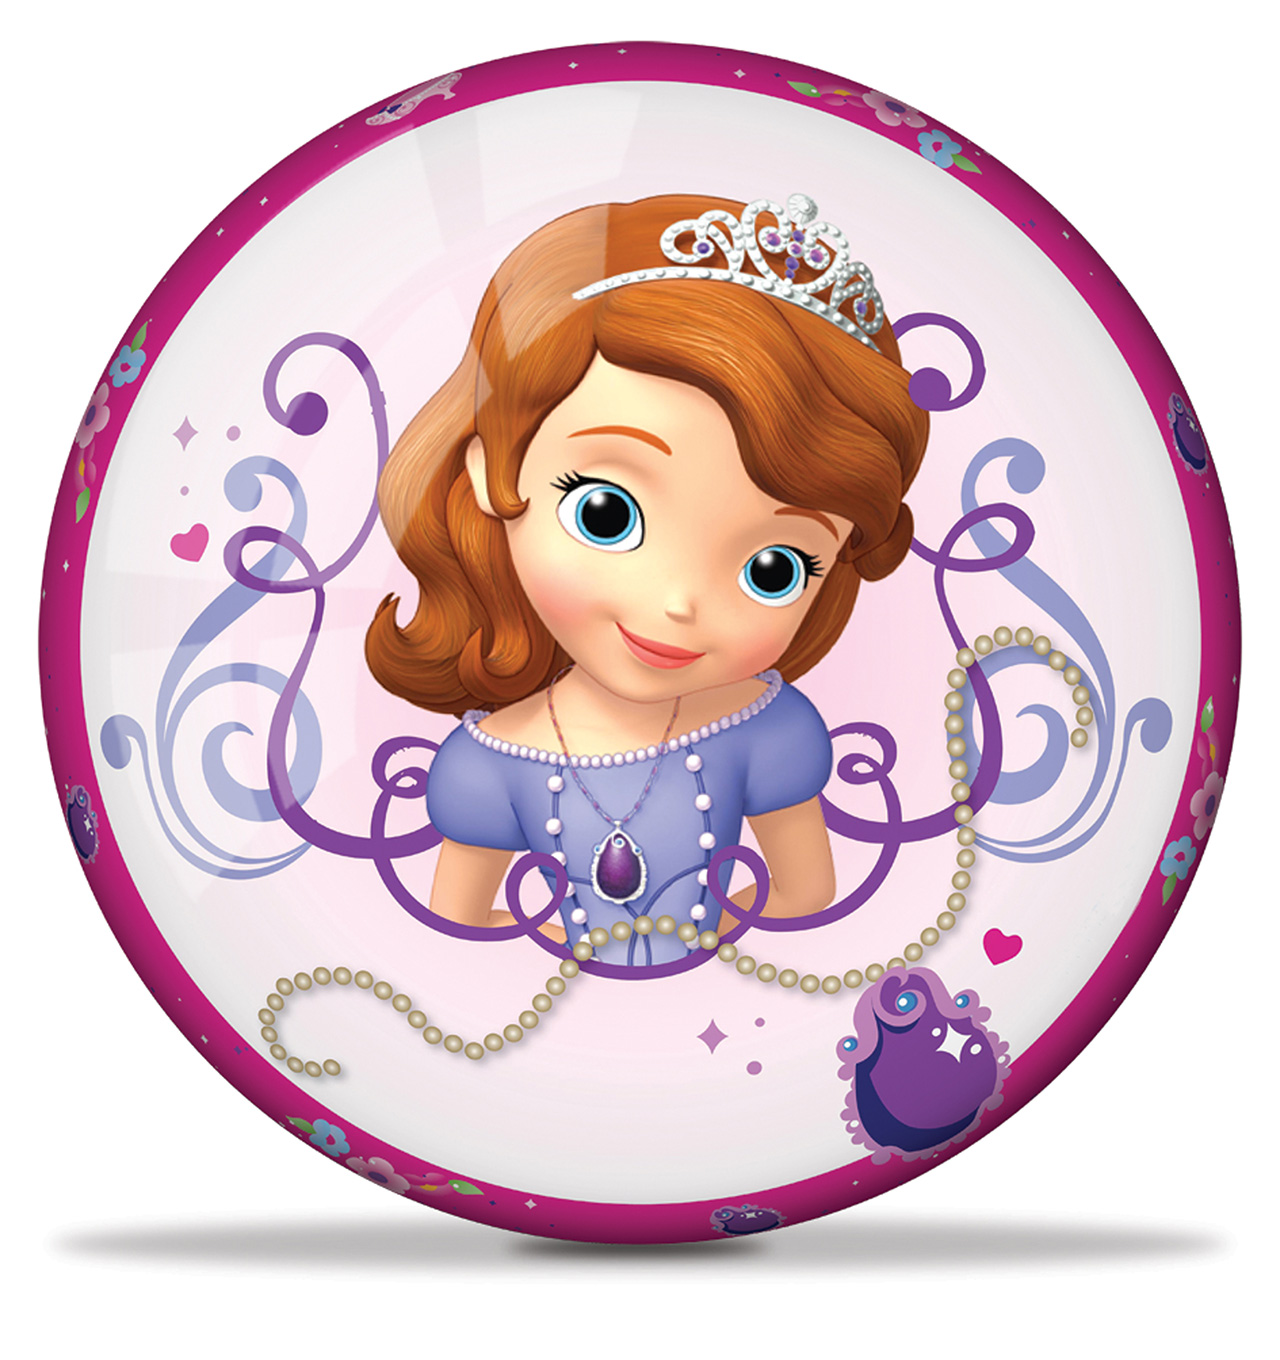 23cm sofia the first ball sofia the first prima toys clipart of dollar bills clipart of dollar bills with a